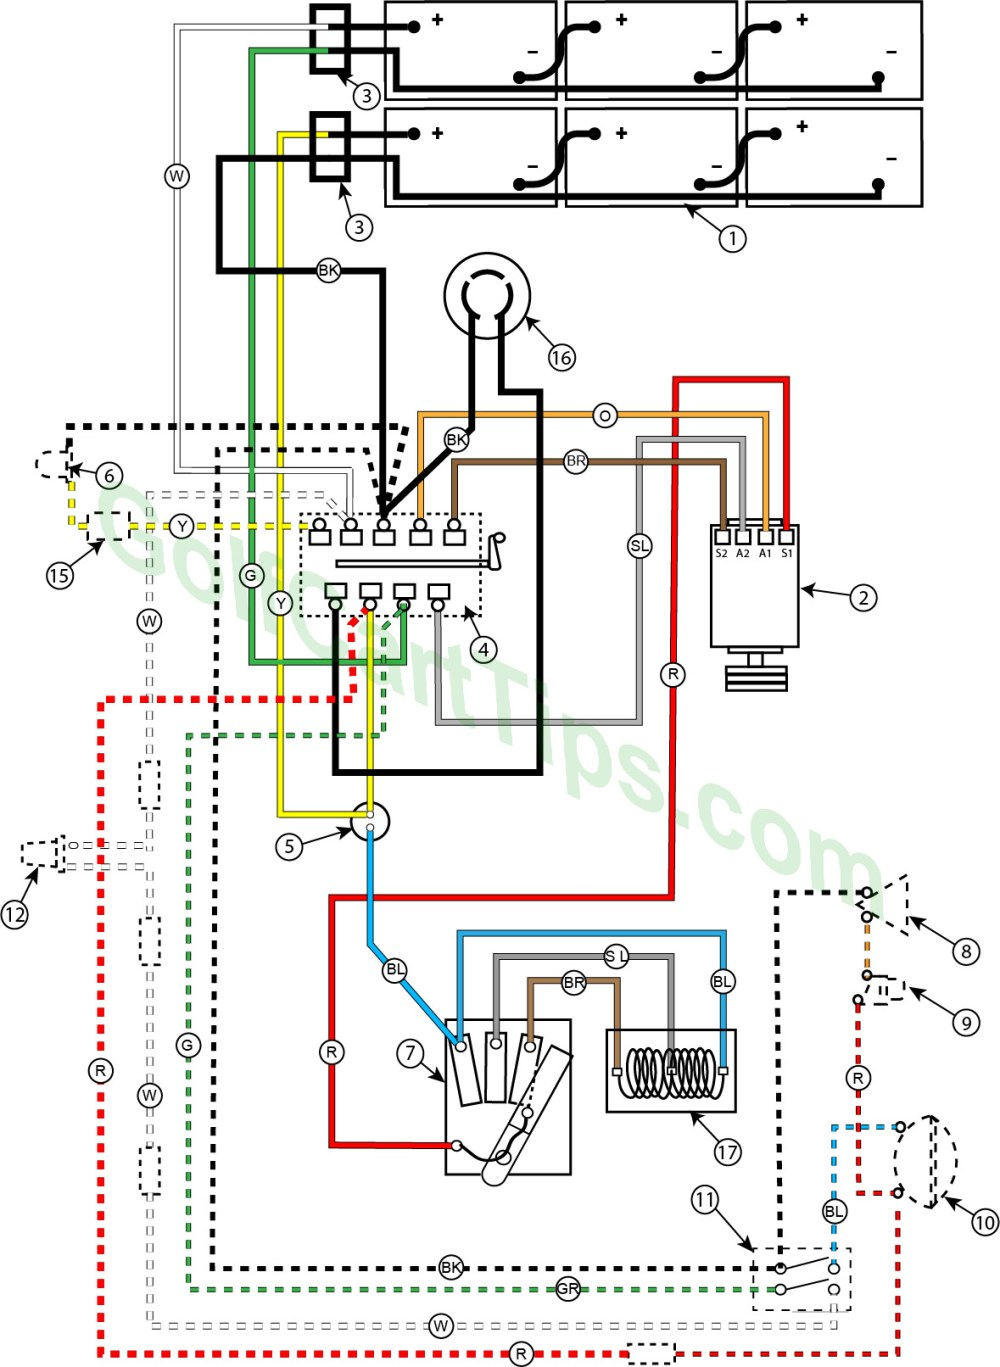 medium resolution of troubleshooting cushman golfsters 1954 58 wiring diagrams cushman 36 volt golf cart wiring diagram cushman 36 volt golf cart wiring diagram